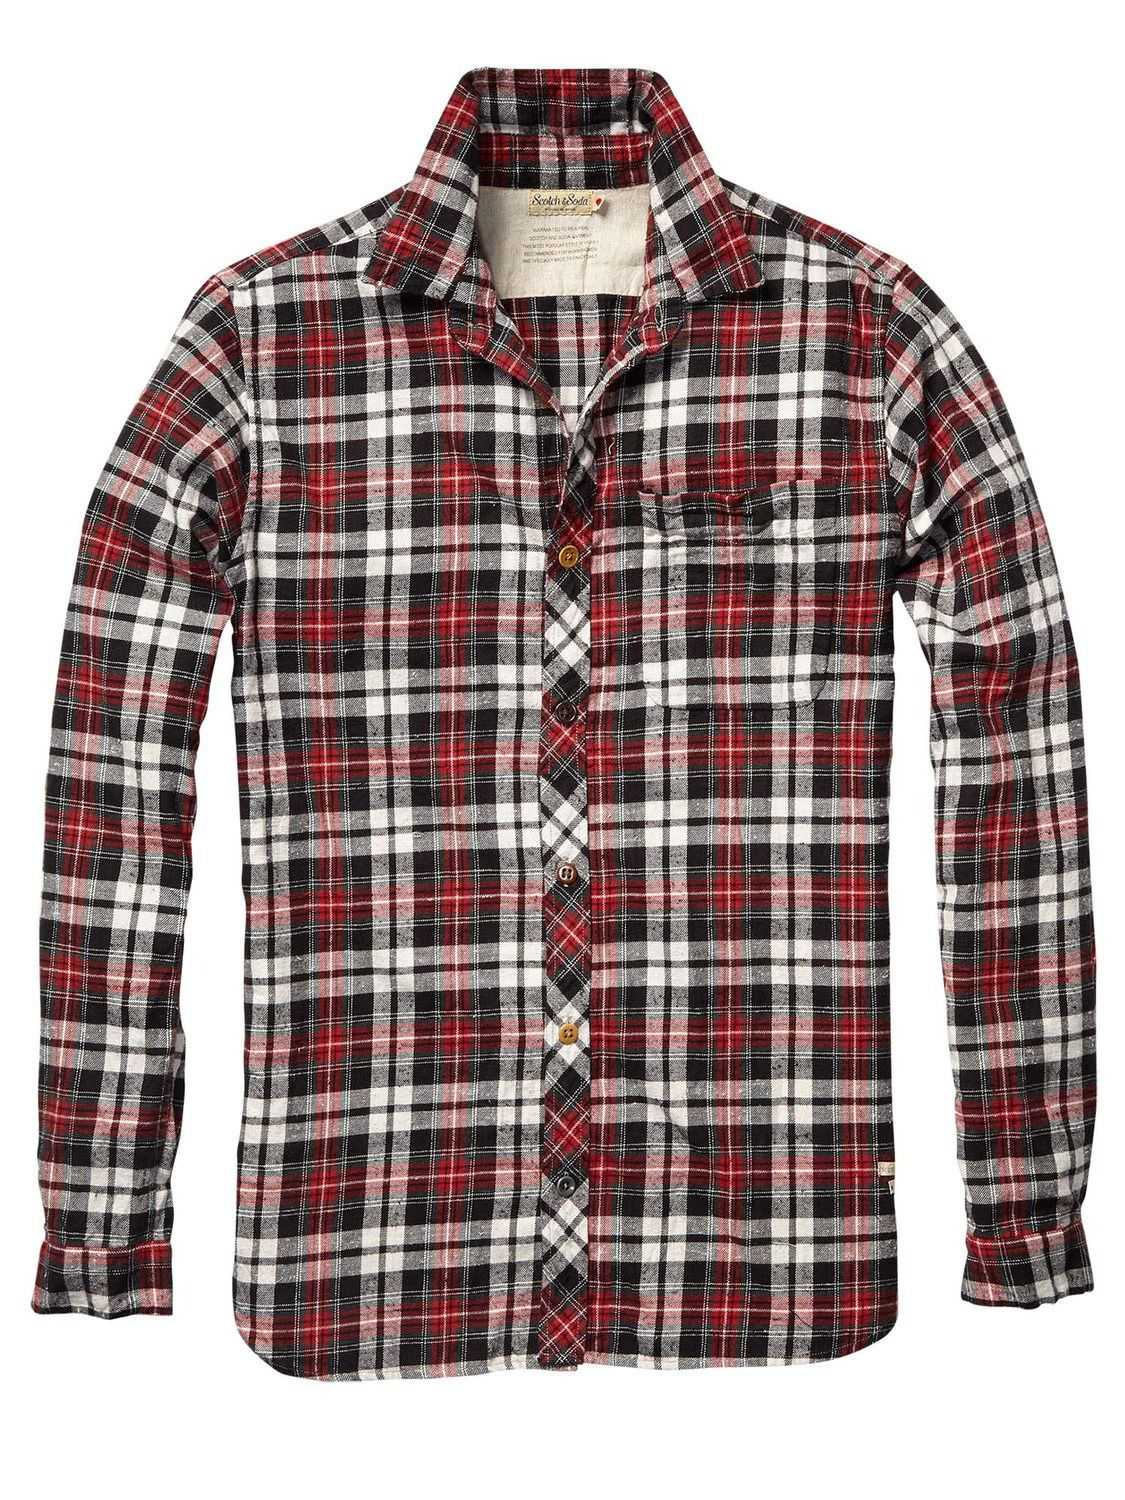 Flannel men's style  Japanese Flannel Check Shirt ue Mens Clothing ue Shirts at Scotch